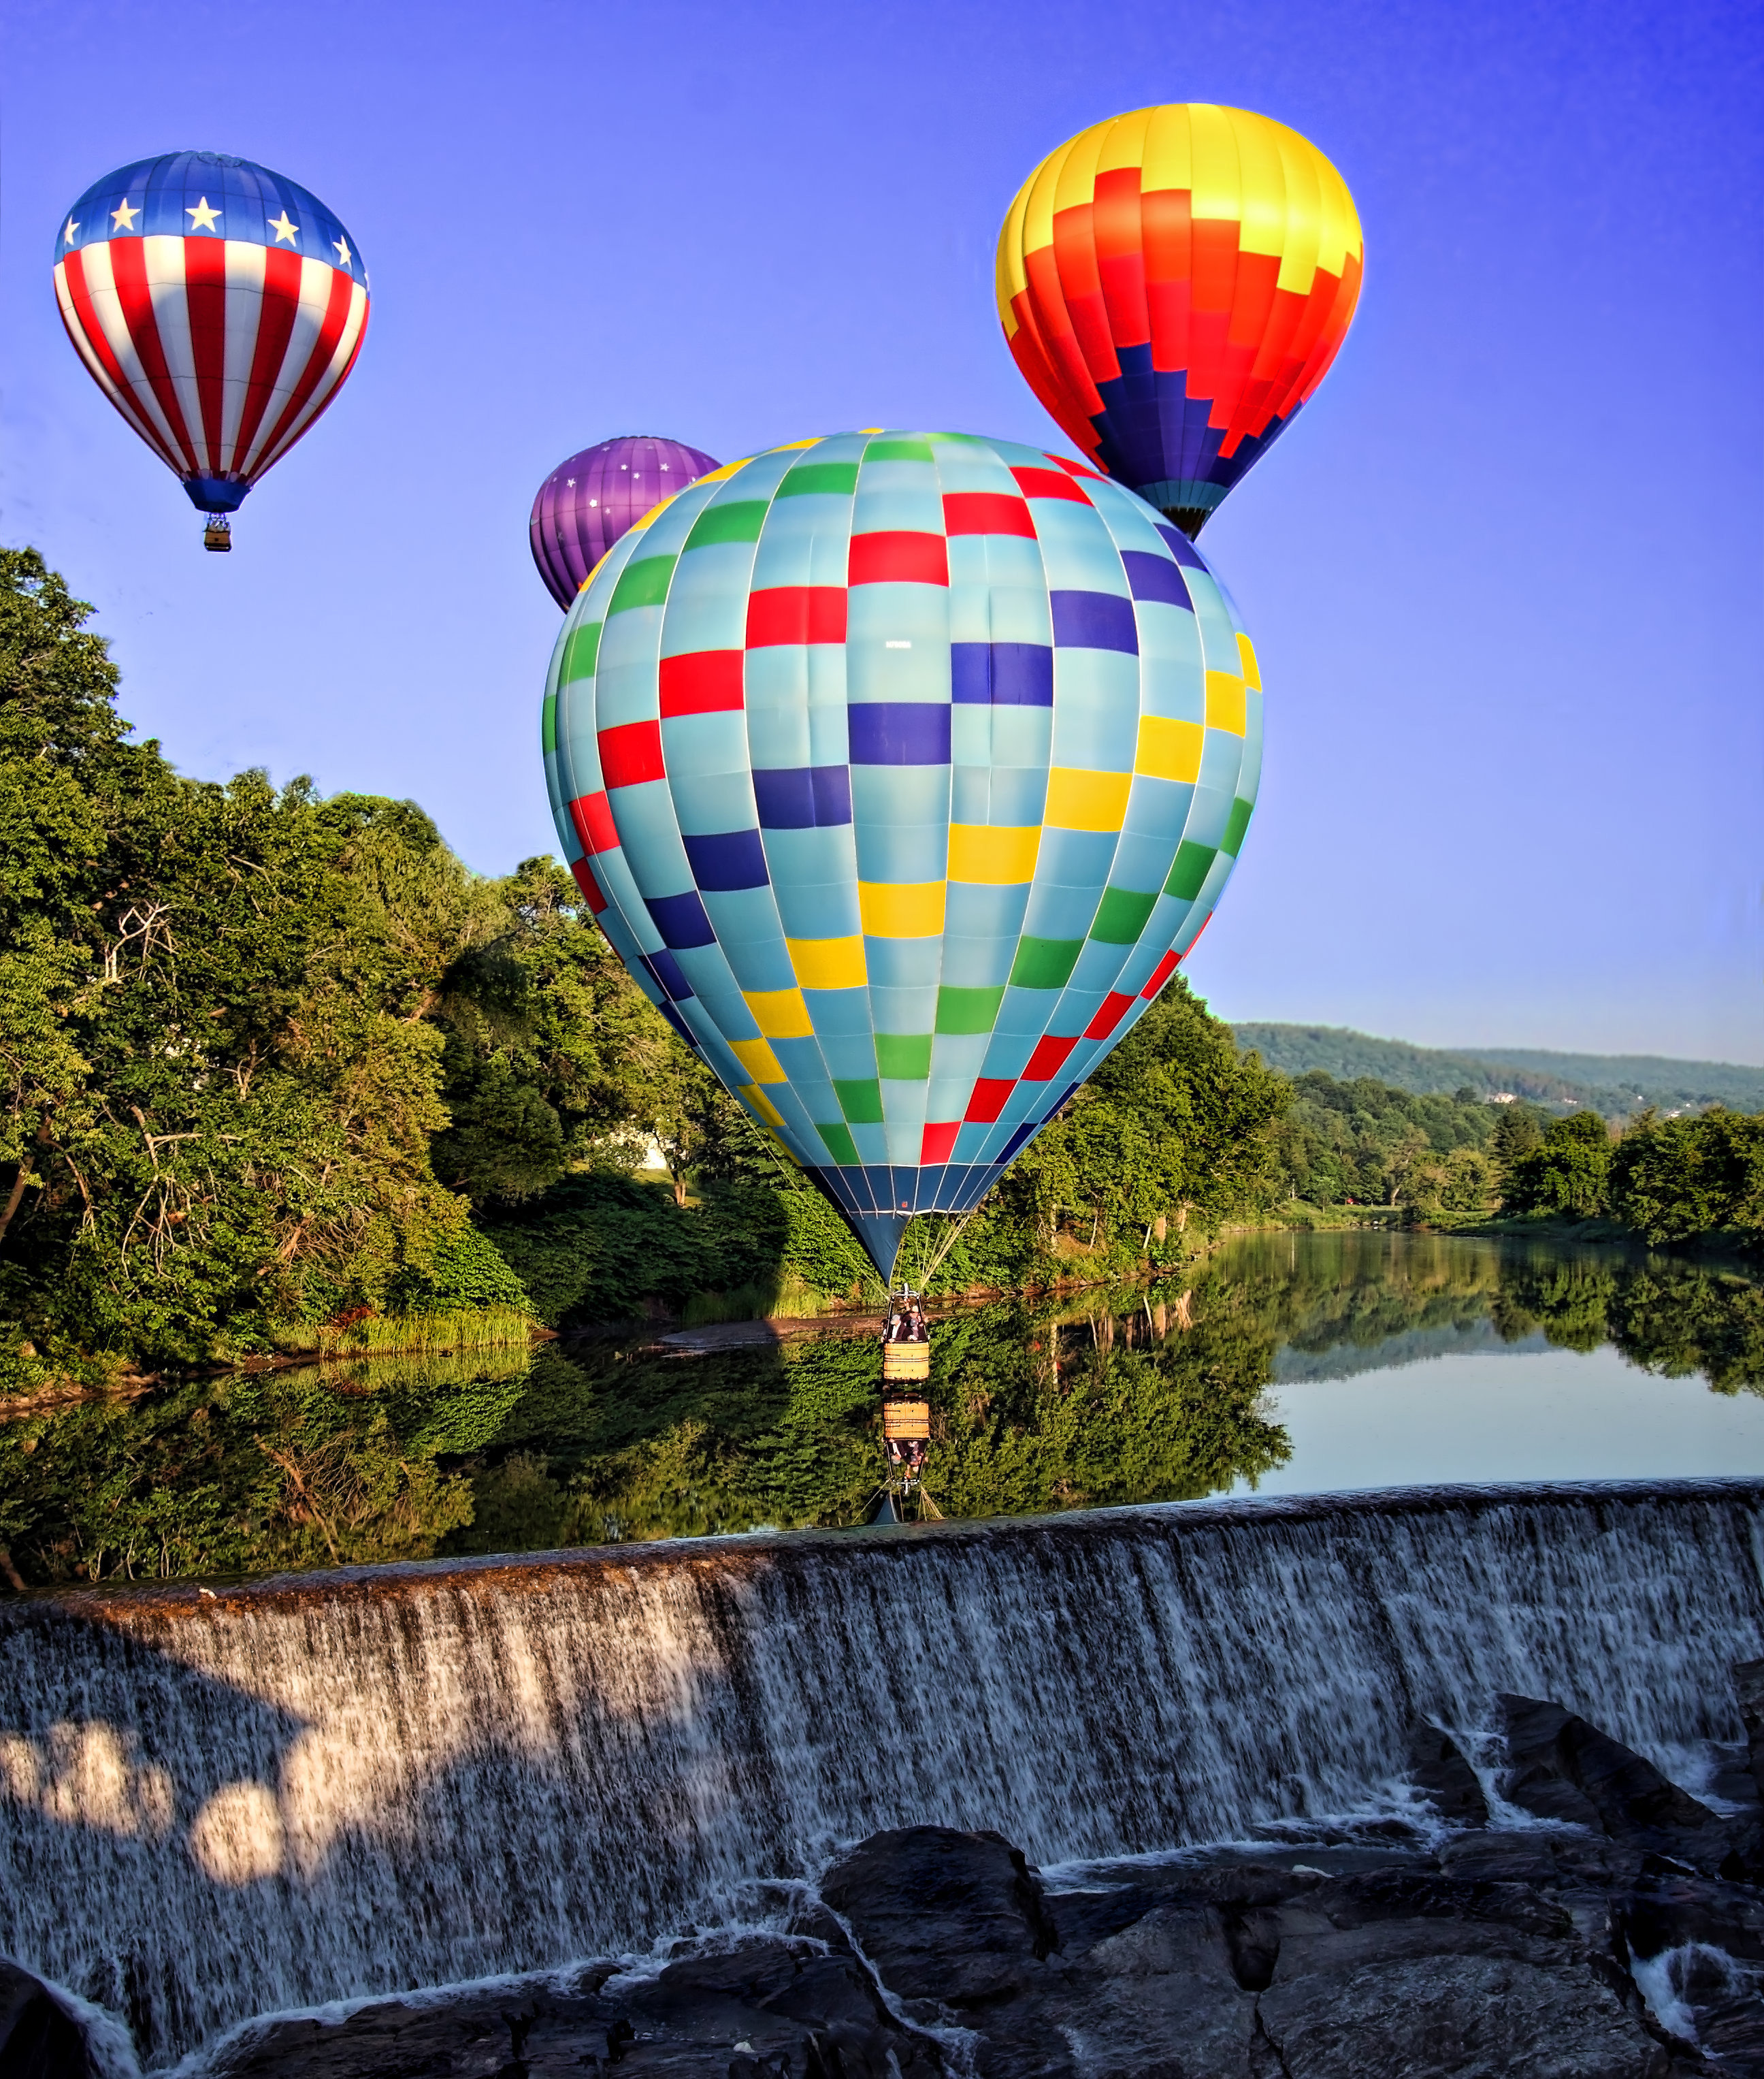 Food + Drink Outdoors + Adventure Trip Ideas Weekend Getaways balloon transport aircraft hot air ballooning Hot Air Balloon Nature outdoor colorful sky atmosphere of earth daytime tourism fun leisure colored